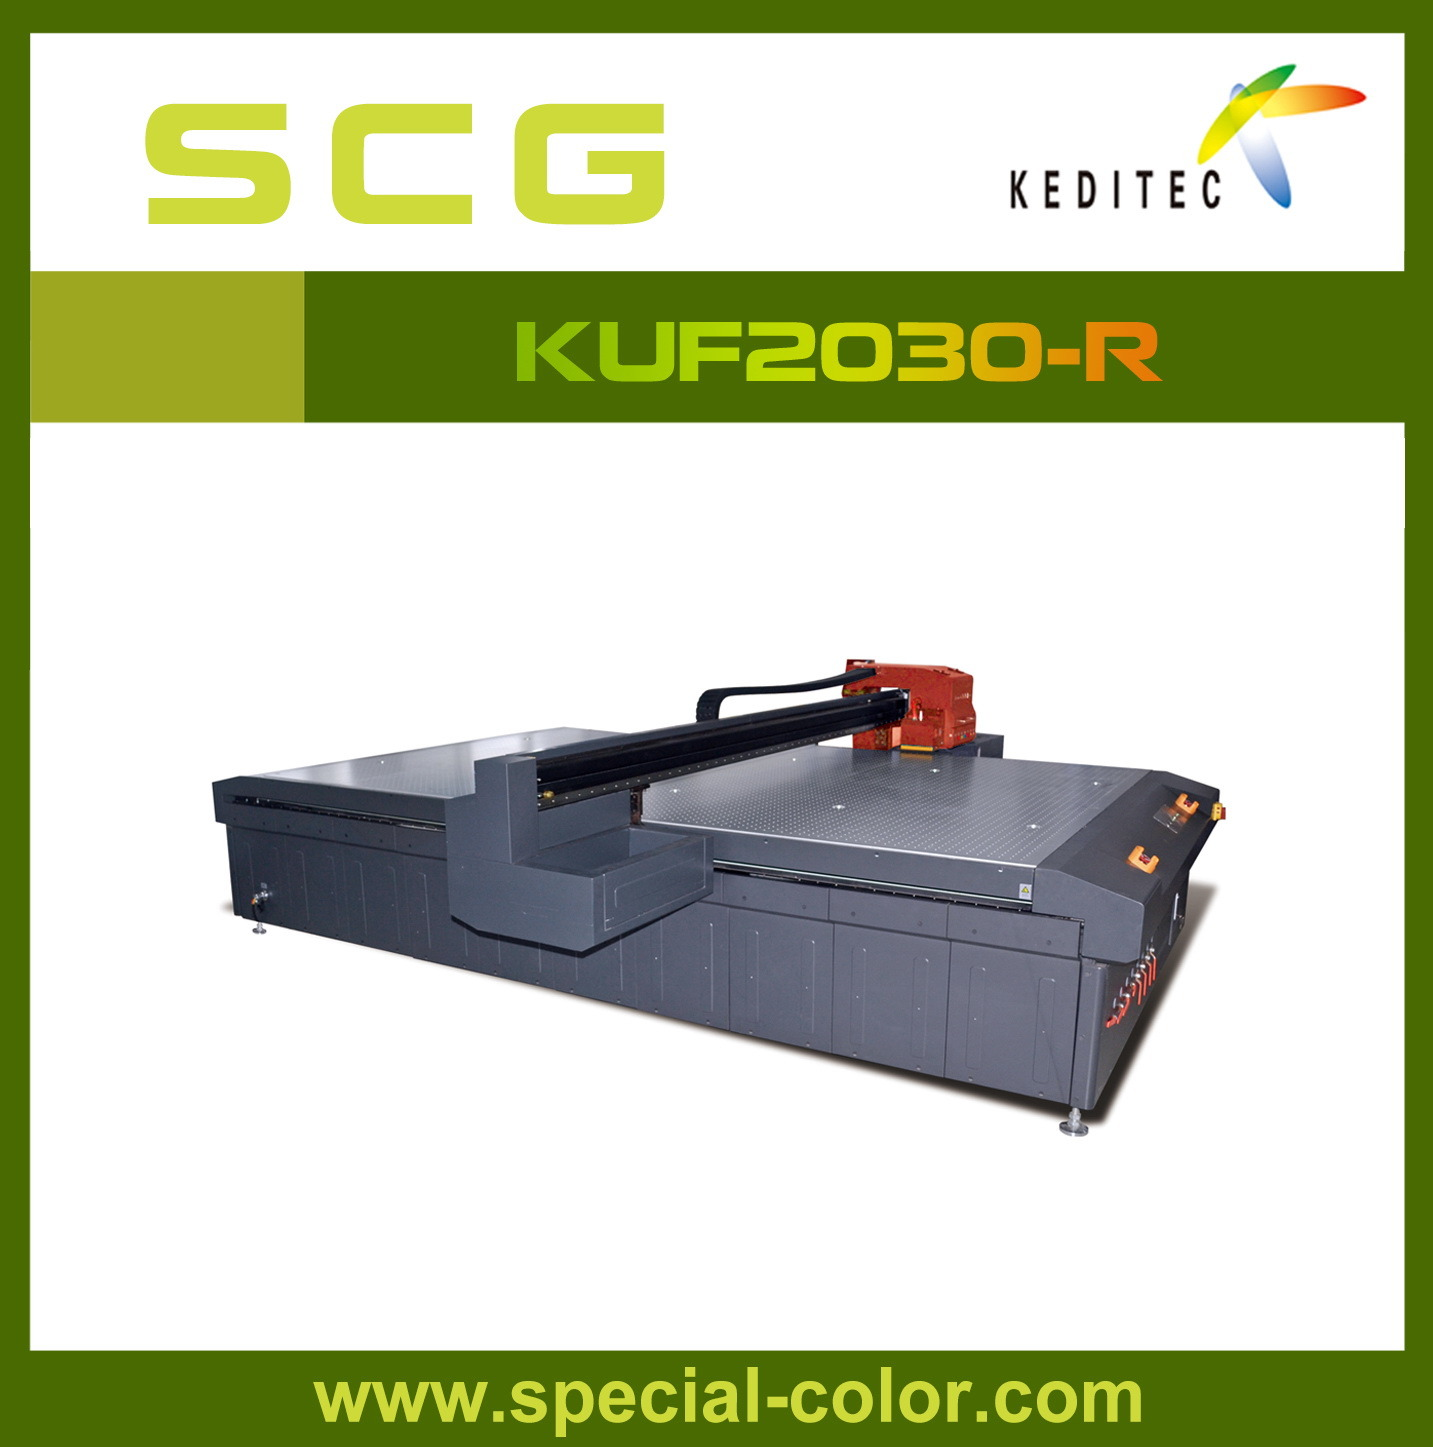 Alpha Multi-Color Flatbed UV Panel Printer for Fabric Kuf2030-S